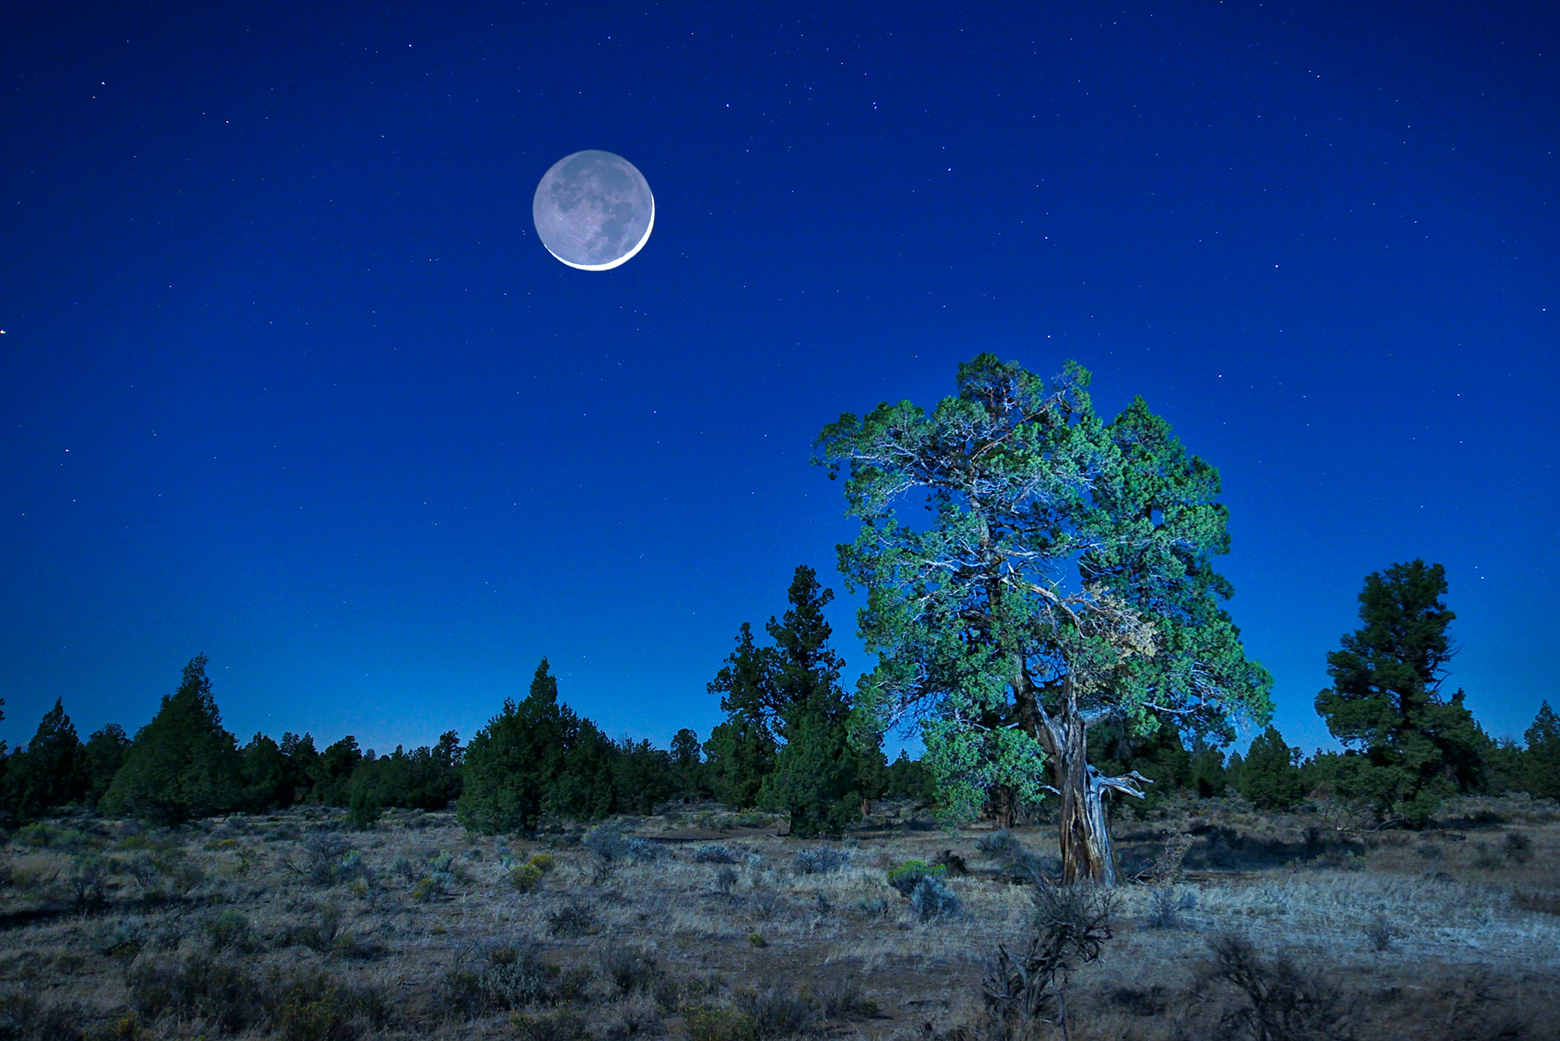 Badlands Wilderness, Juniper Desert at night ,Deschutes County,Oregon, USA